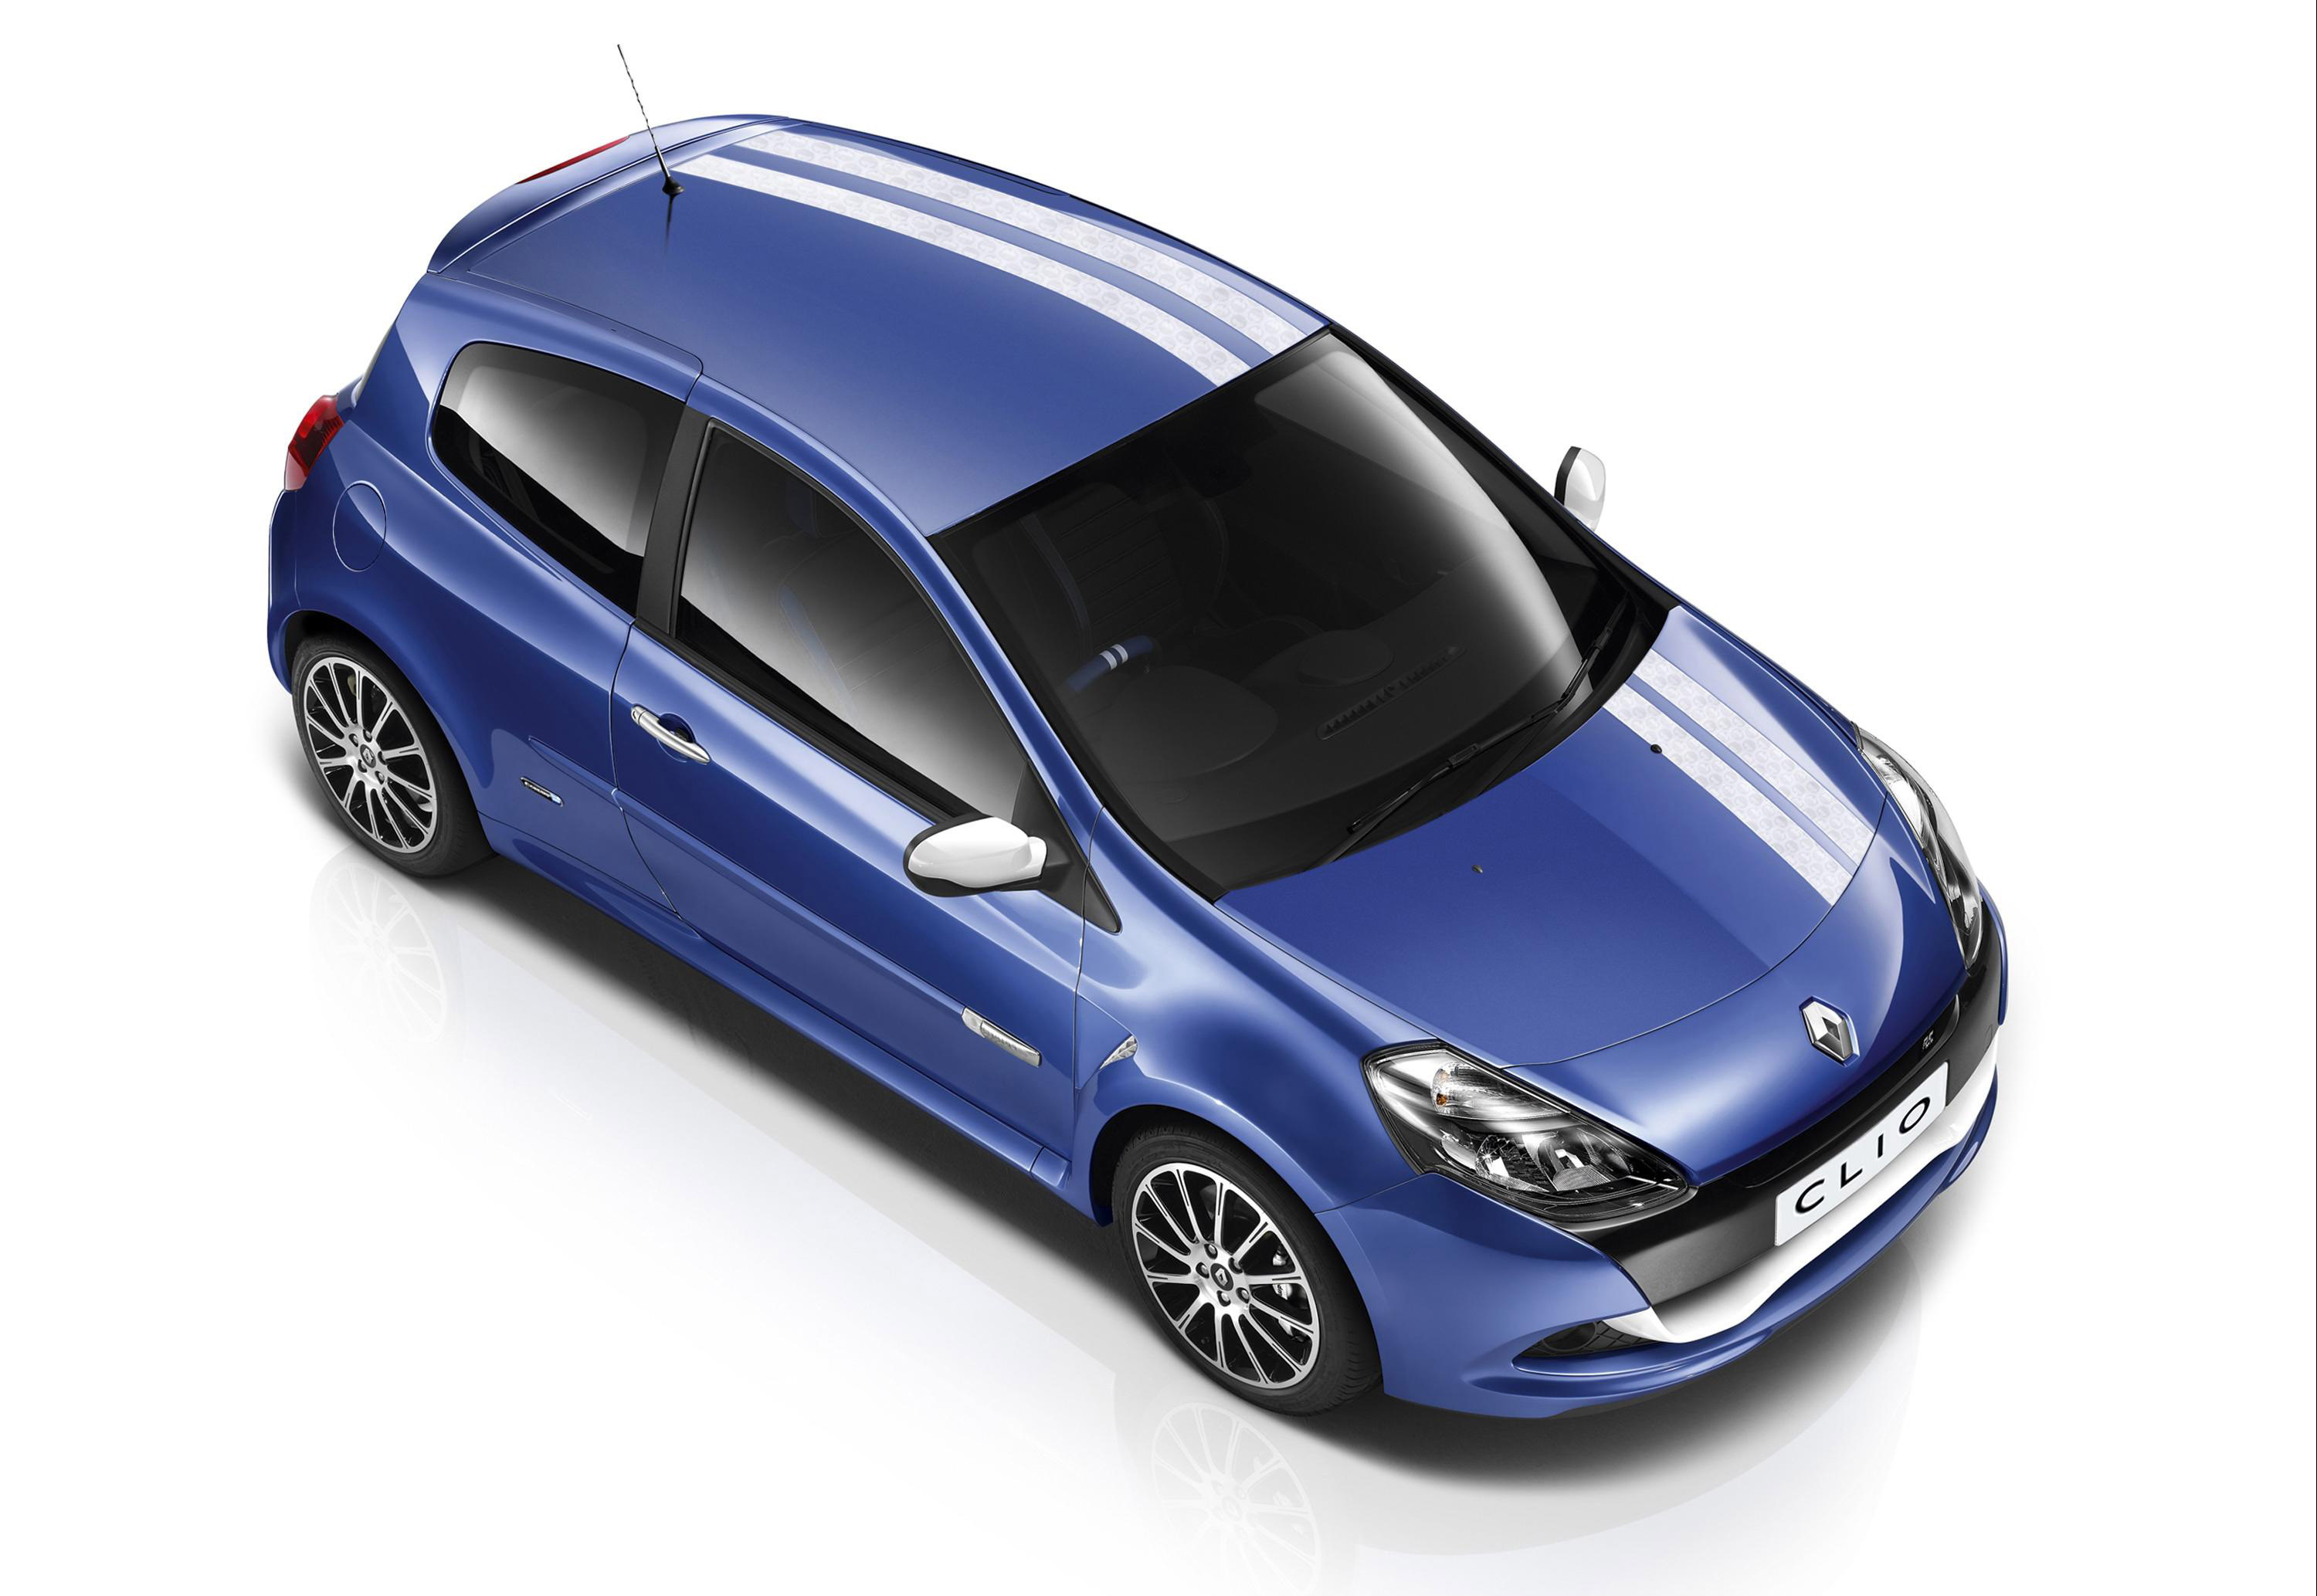 renault revealed the uk pricing on the clio gordini 200. Black Bedroom Furniture Sets. Home Design Ideas